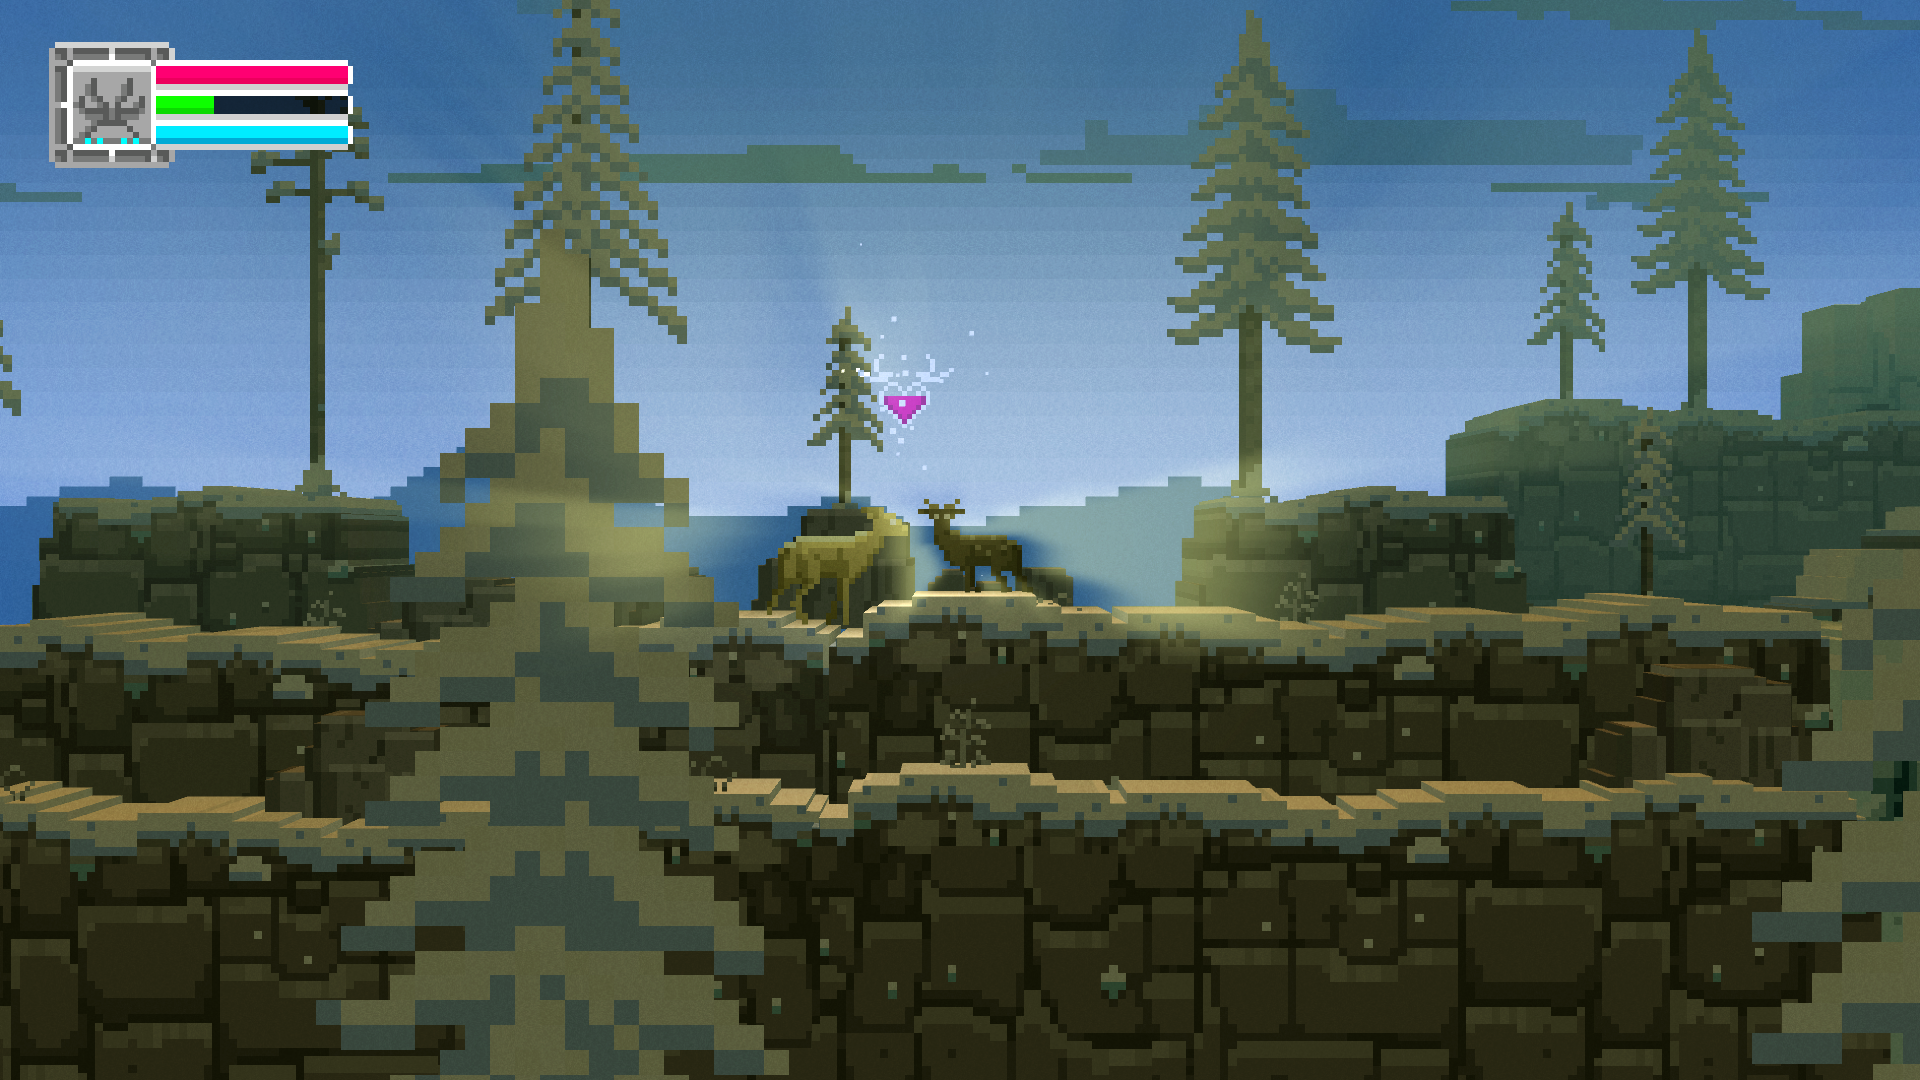 the-deer-god-reincarnates-with-physical-playstation-4,-vita-releases-frikigamers.com.jpg